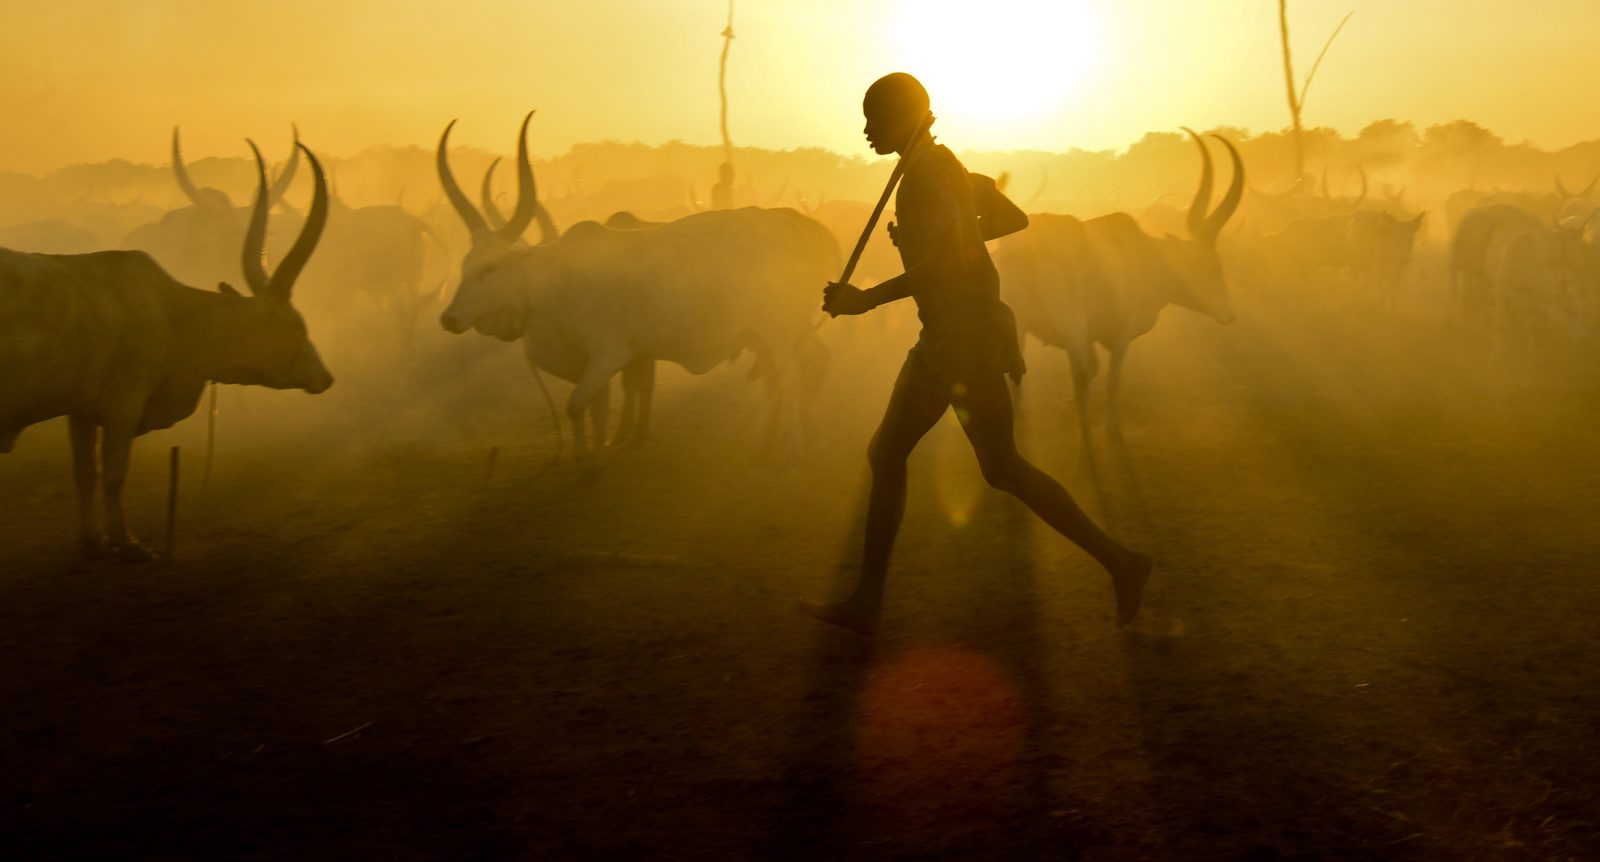 Herding cattle at dusk, South Sudan